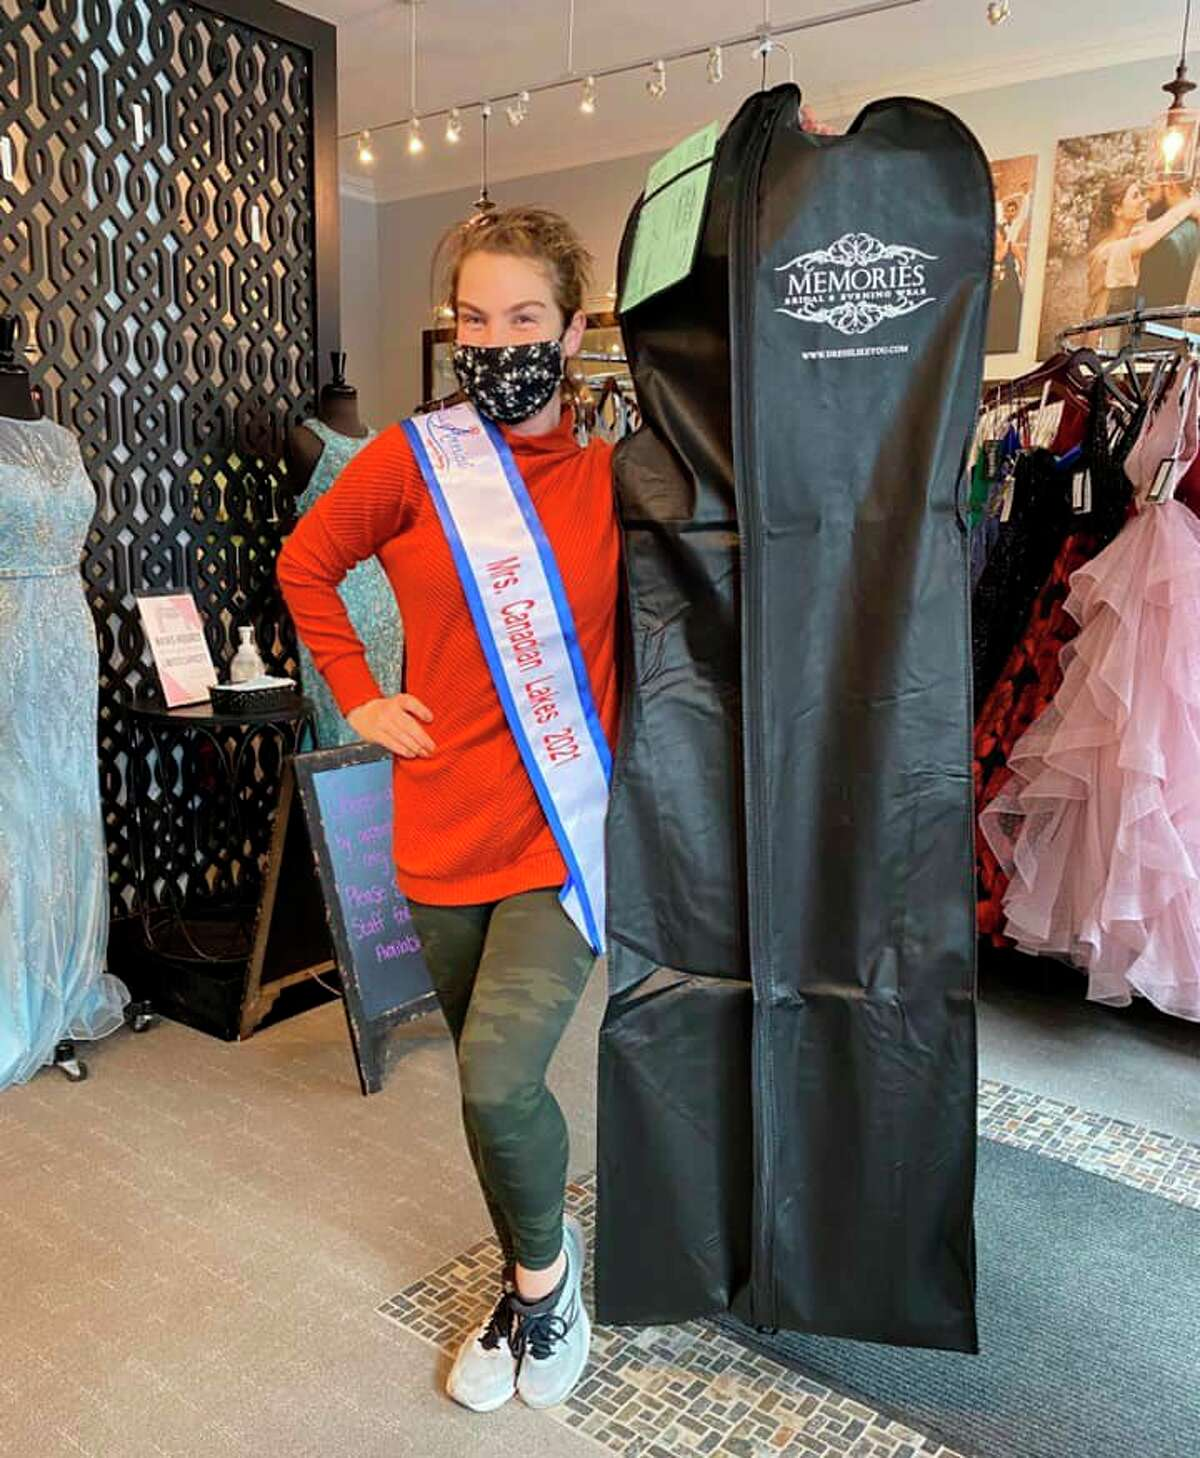 Jackie Blankenship, who will represent Mrs. Canadian Lakes in this year's Mrs. Michigan for America Pageant, is pictured at her favorite dress shop, Memories Bridal & Evening Wear, in Kalamazoo picking up her evening gown for the pageant. (Courtesy photo)